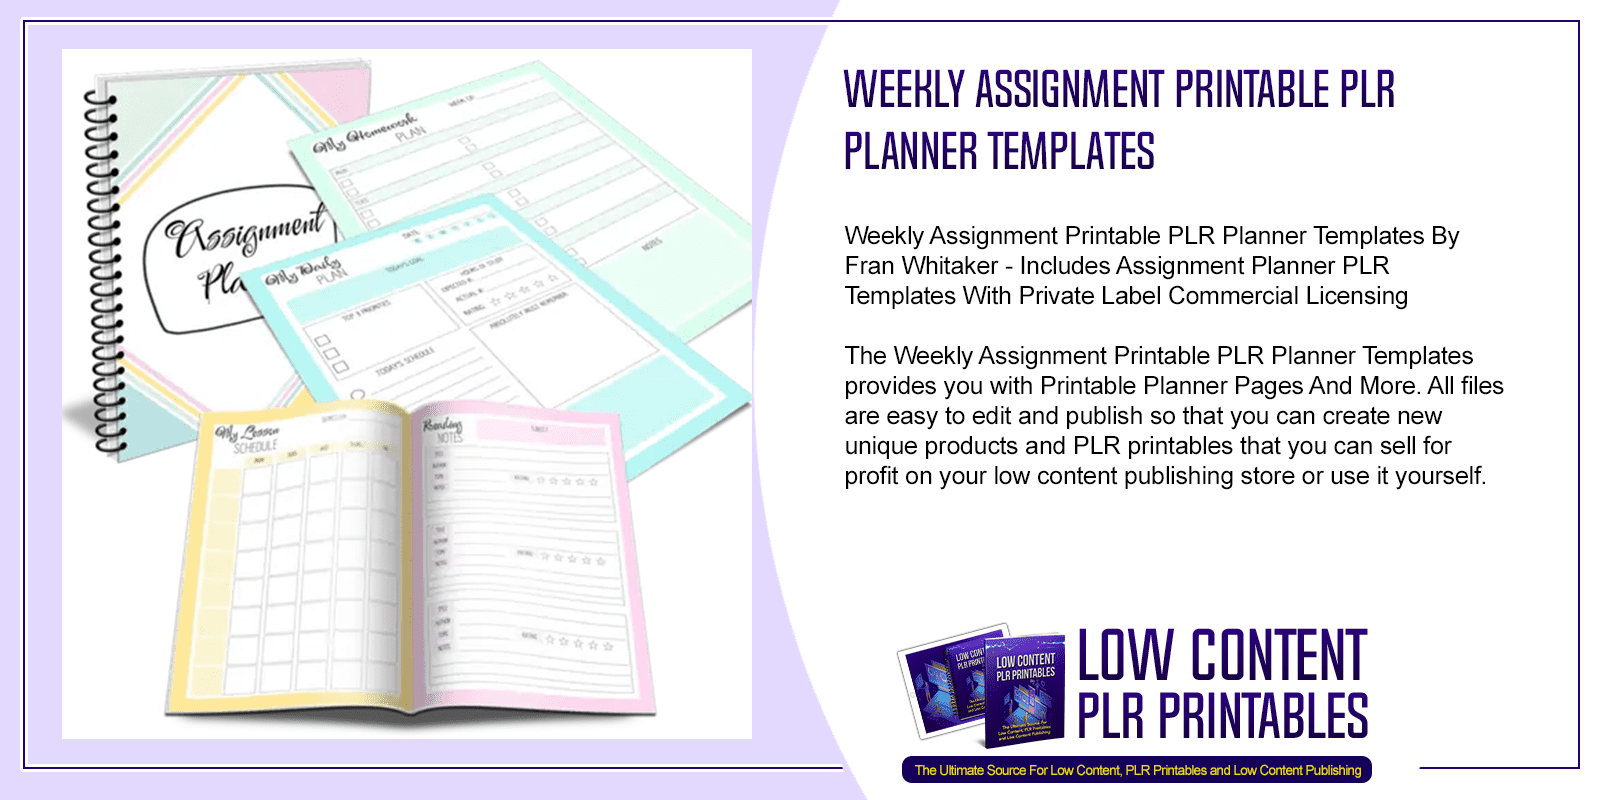 Weekly Assignment Printable PLR Planner Templates